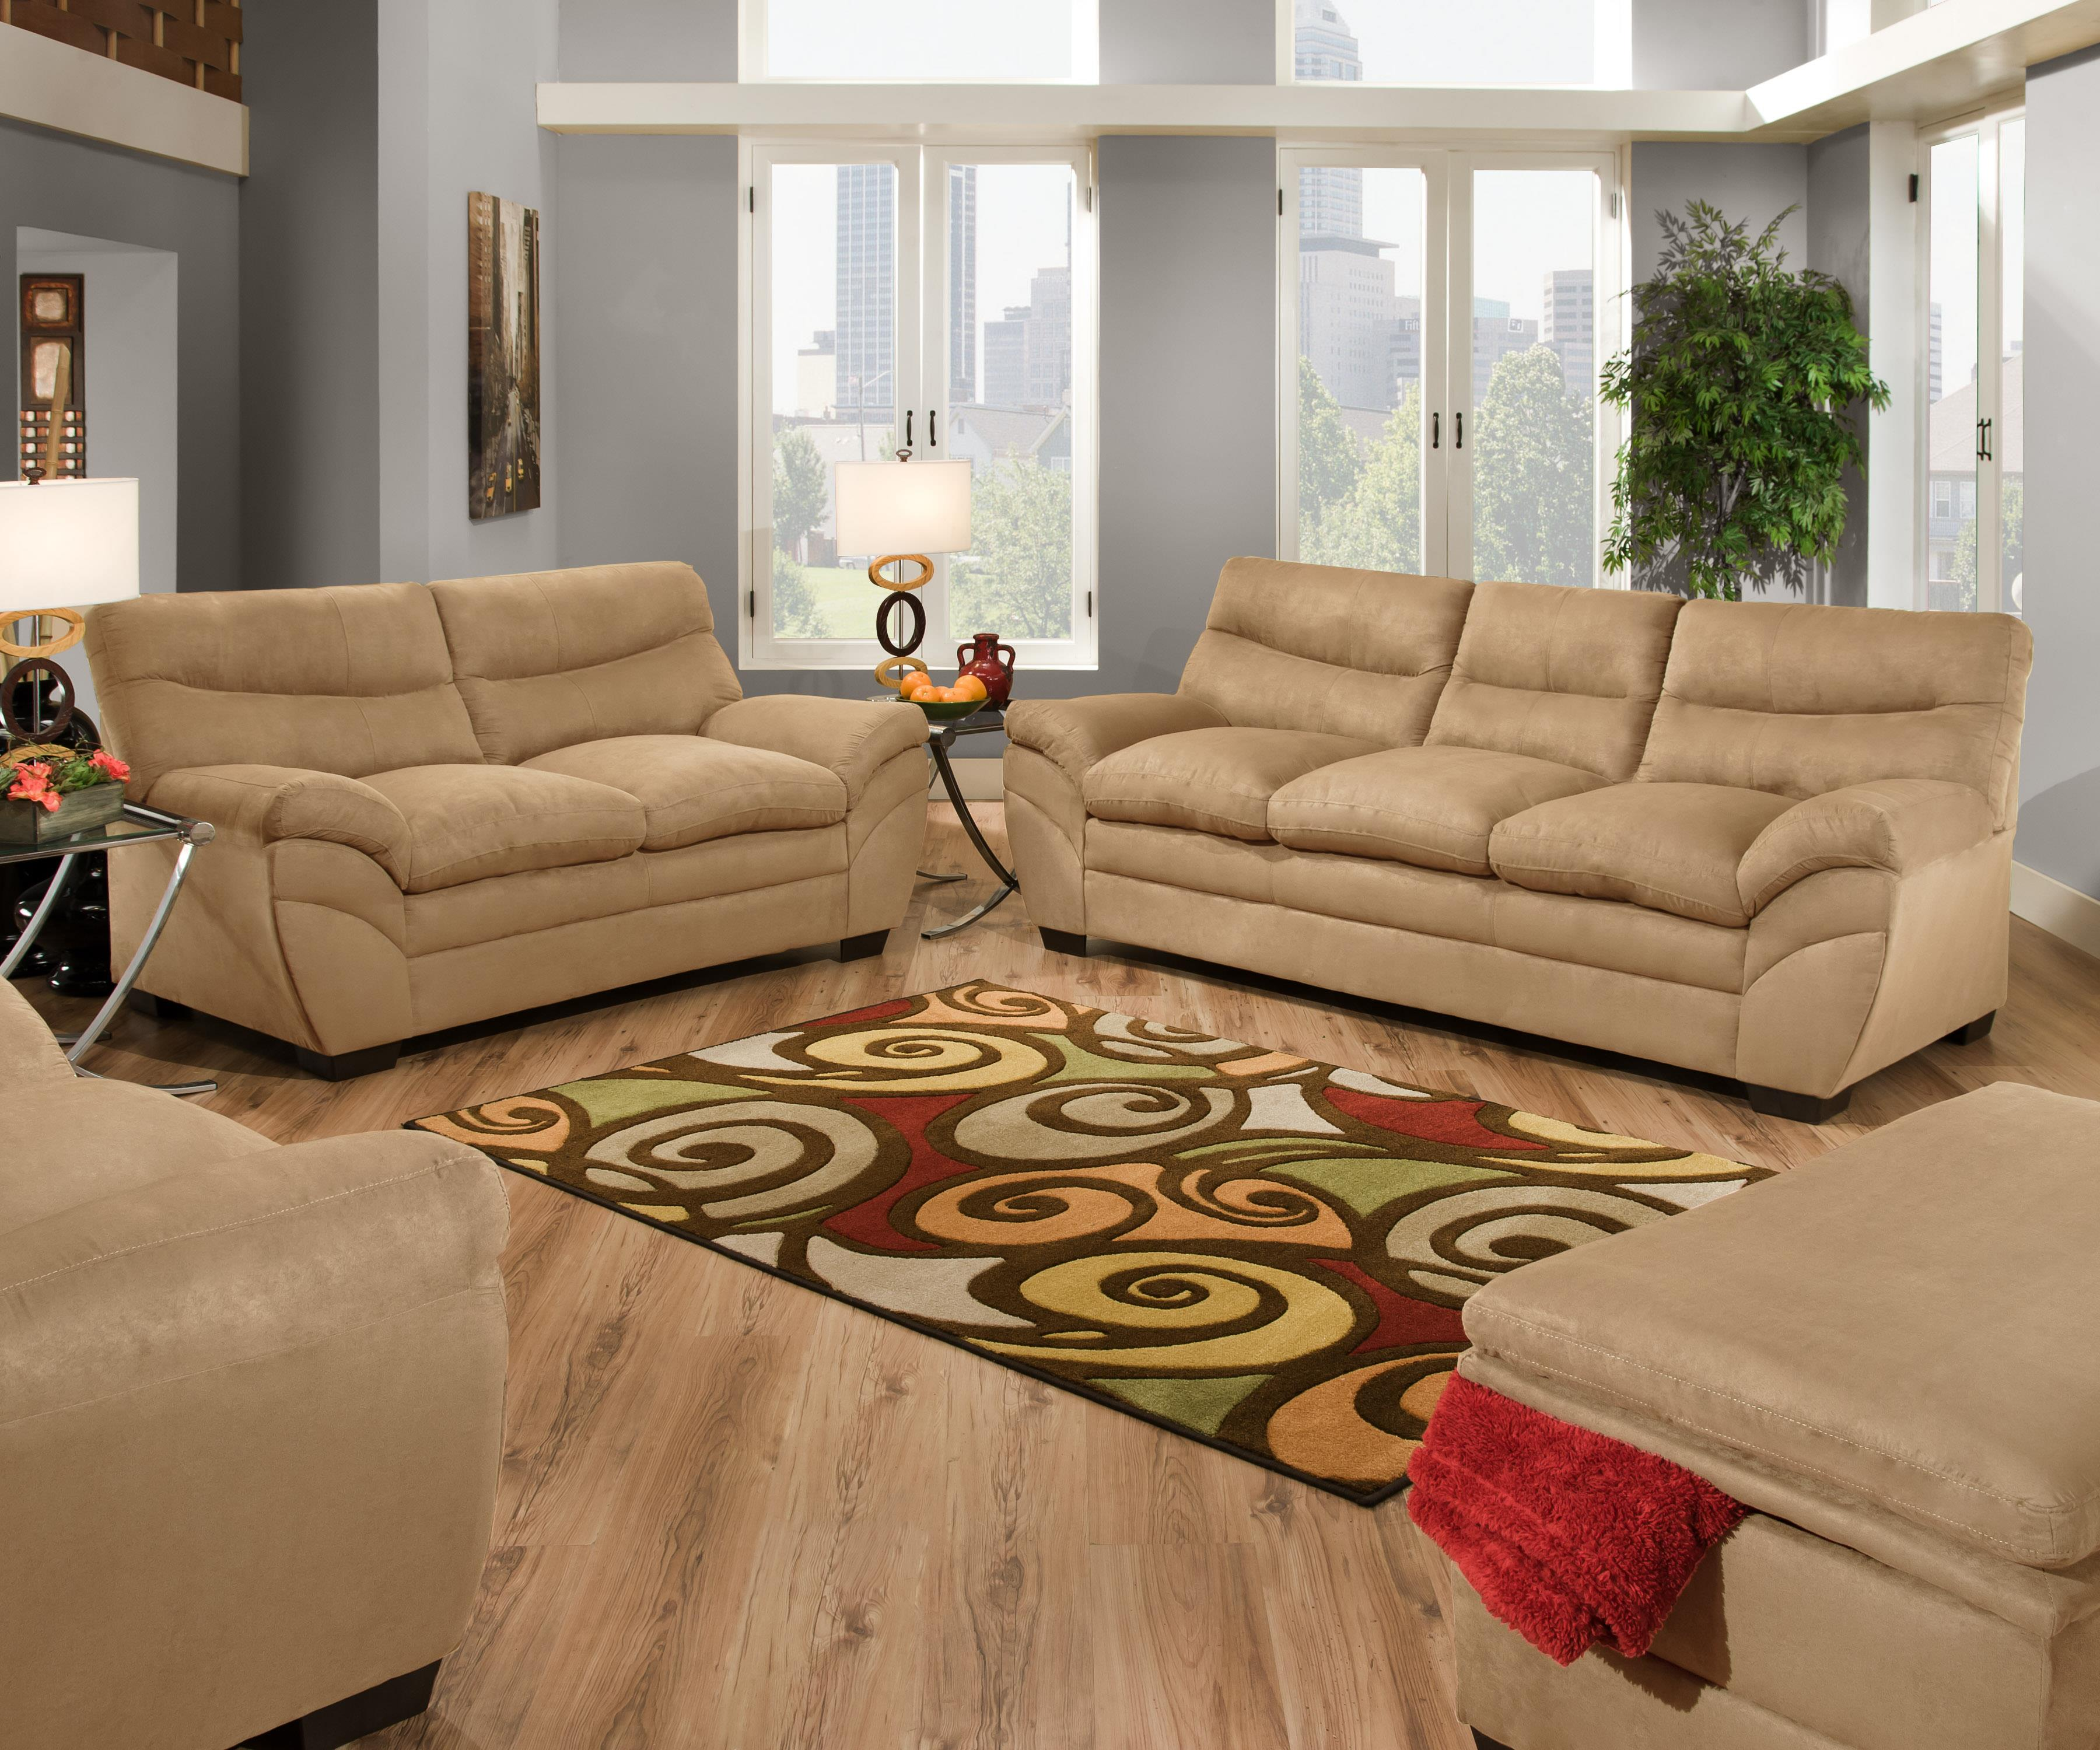 Delicieux United Furniture Industries 9515 Stationary Living Room Group |  Casa Leaders Inc. | Stationary